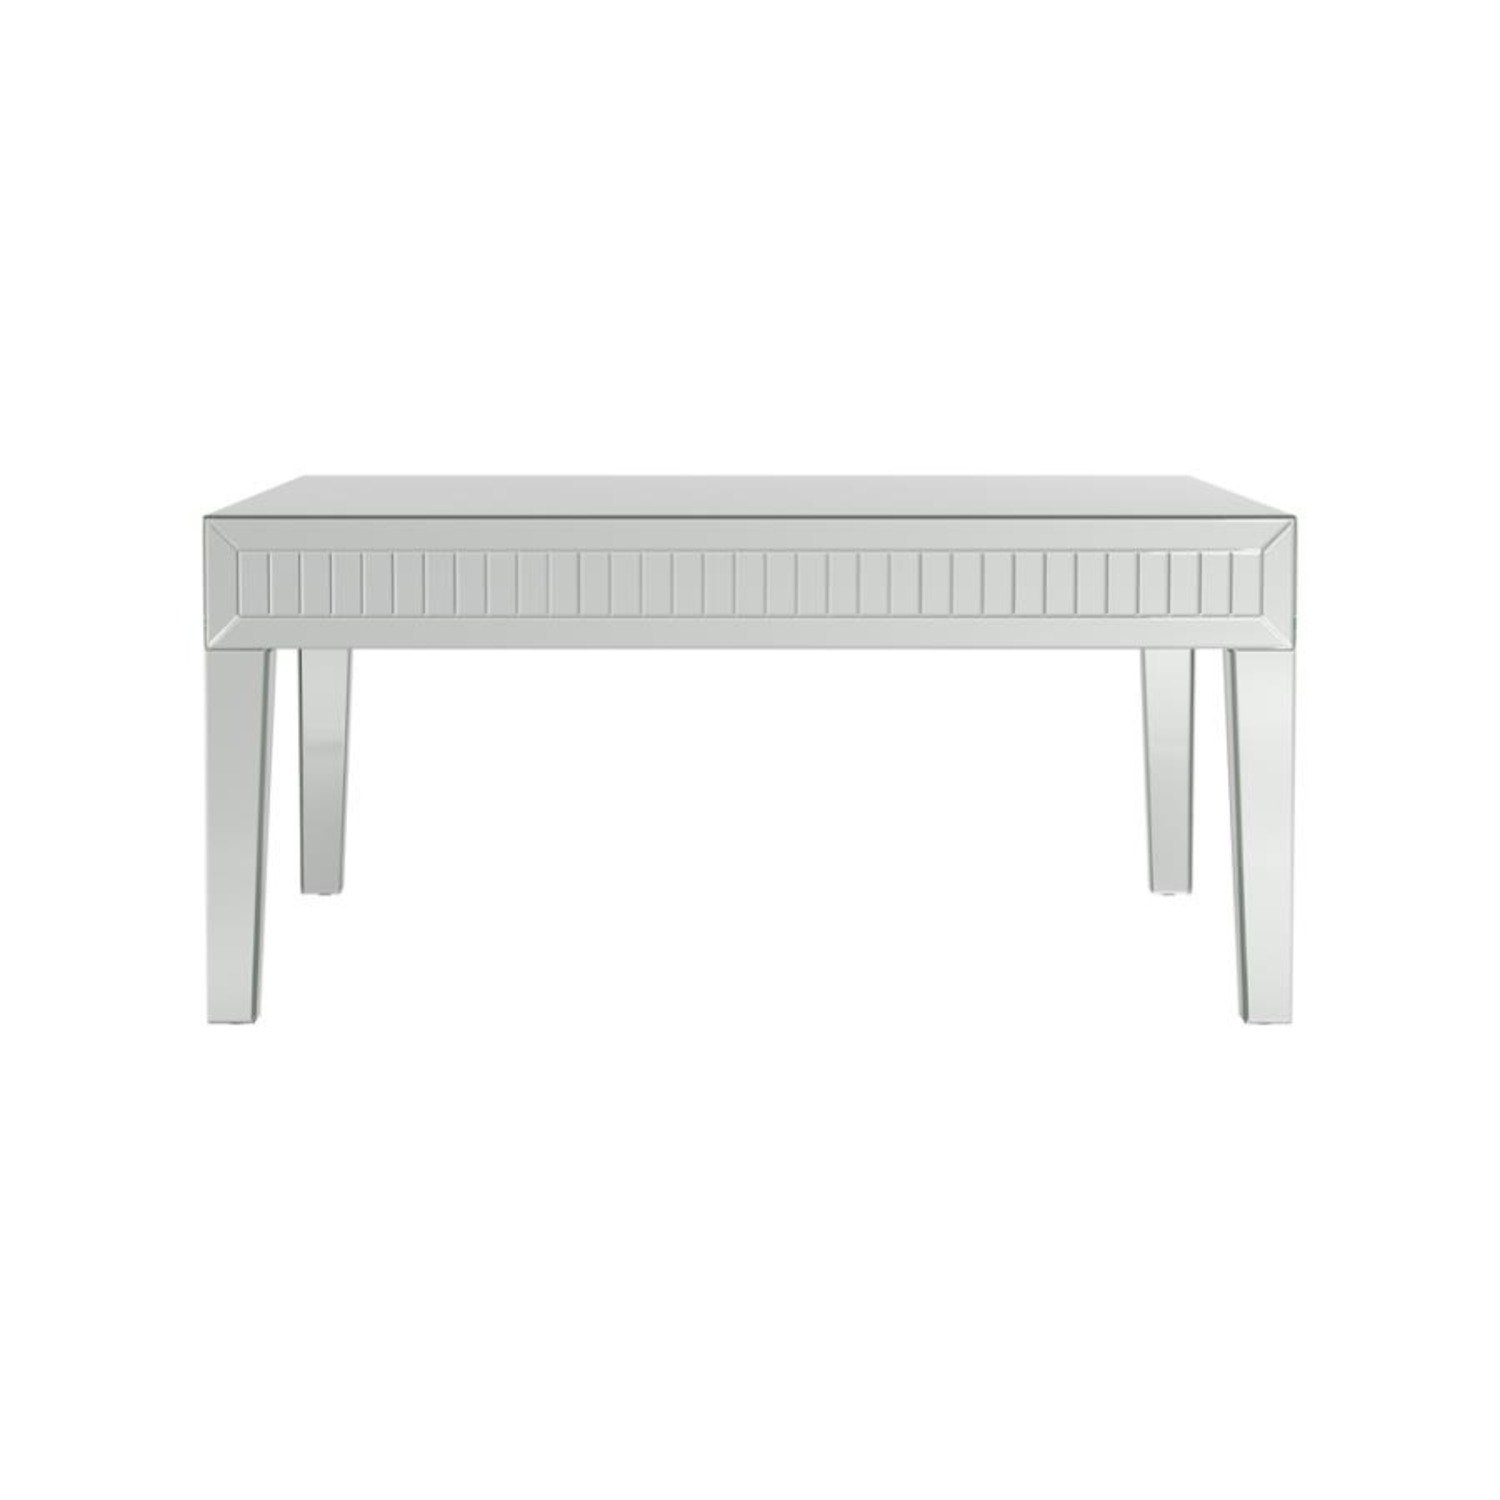 Coffee Table In Silver Finish W/ Mirror Tile Frame - image-1